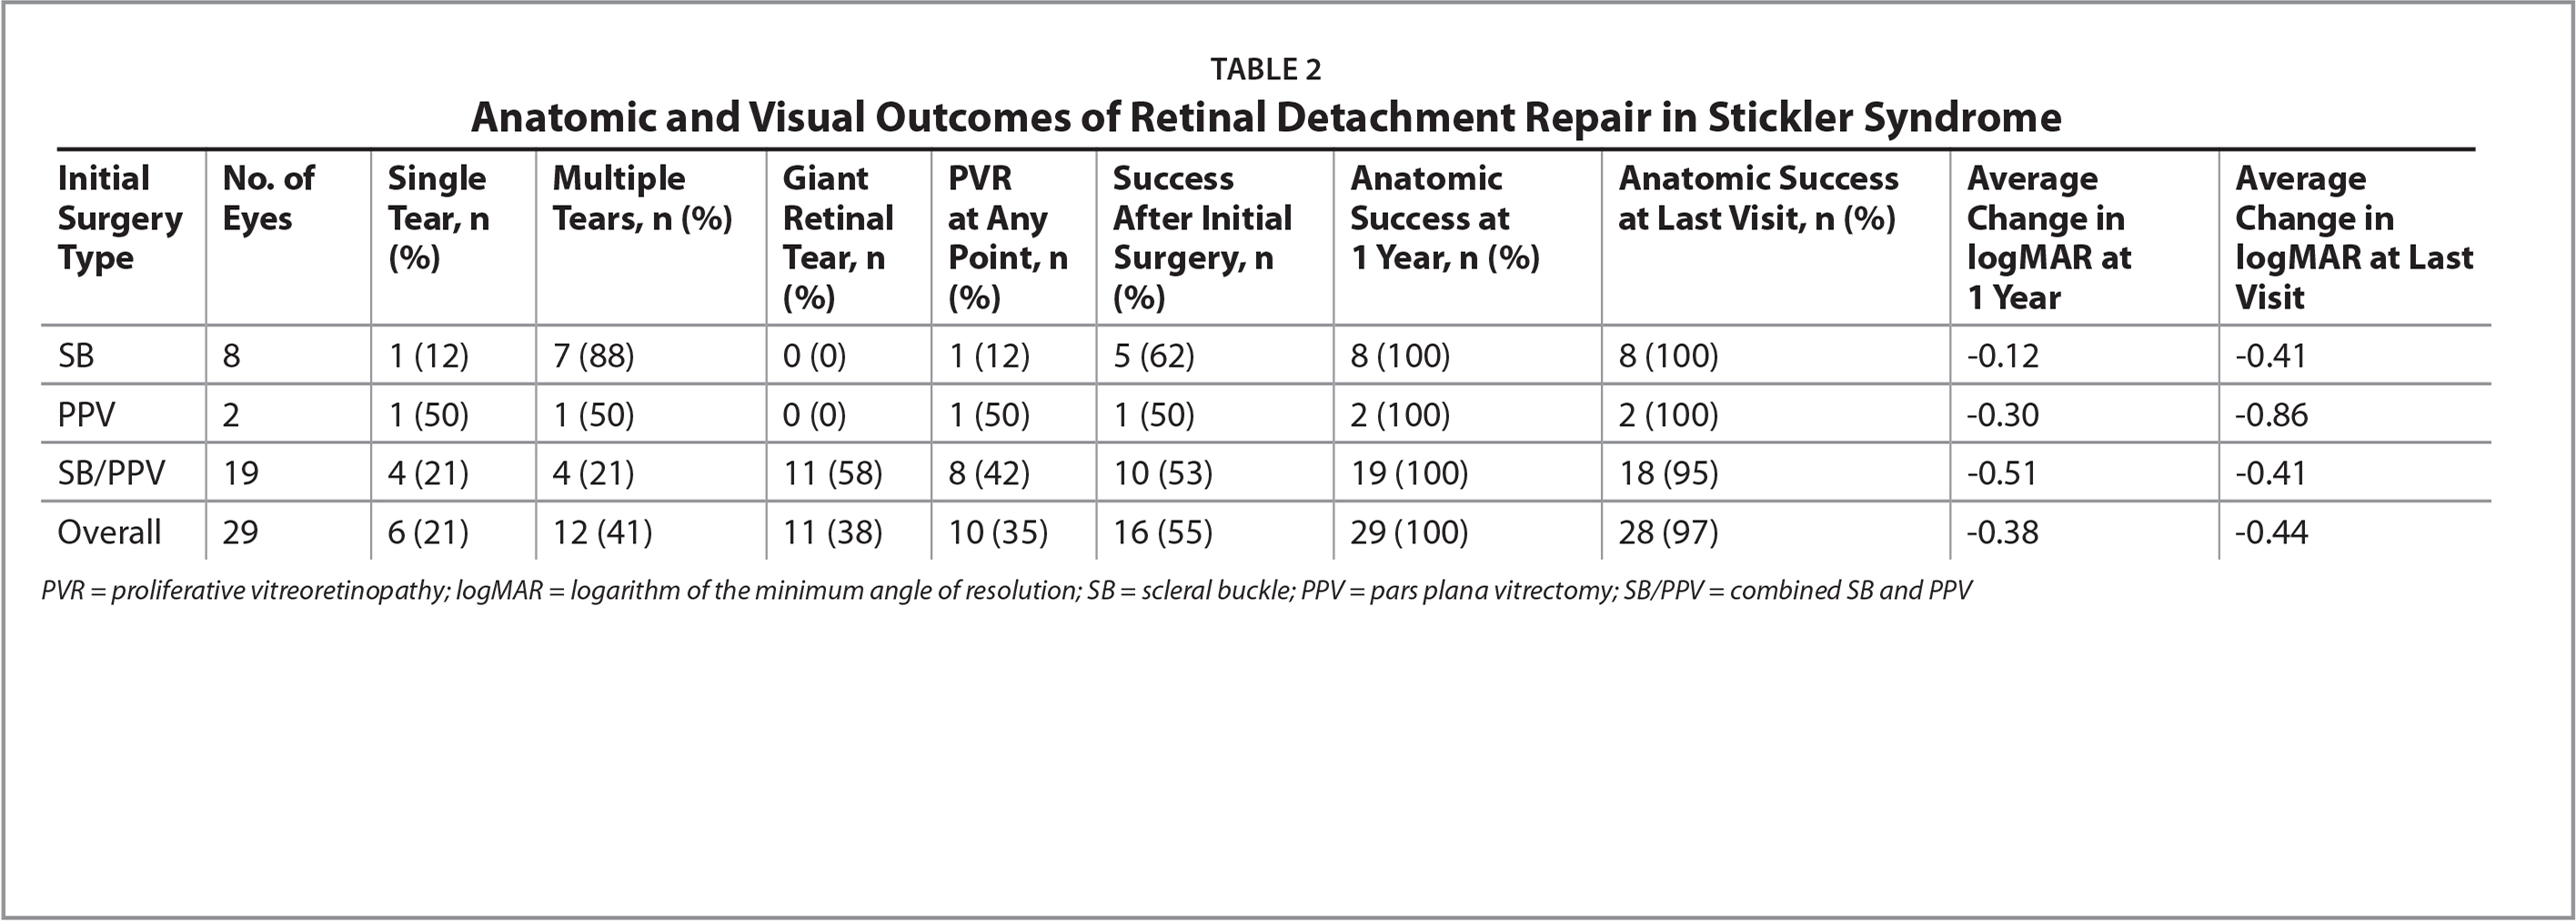 Anatomic and Visual Outcomes of Retinal Detachment Repair in Stickler Syndrome